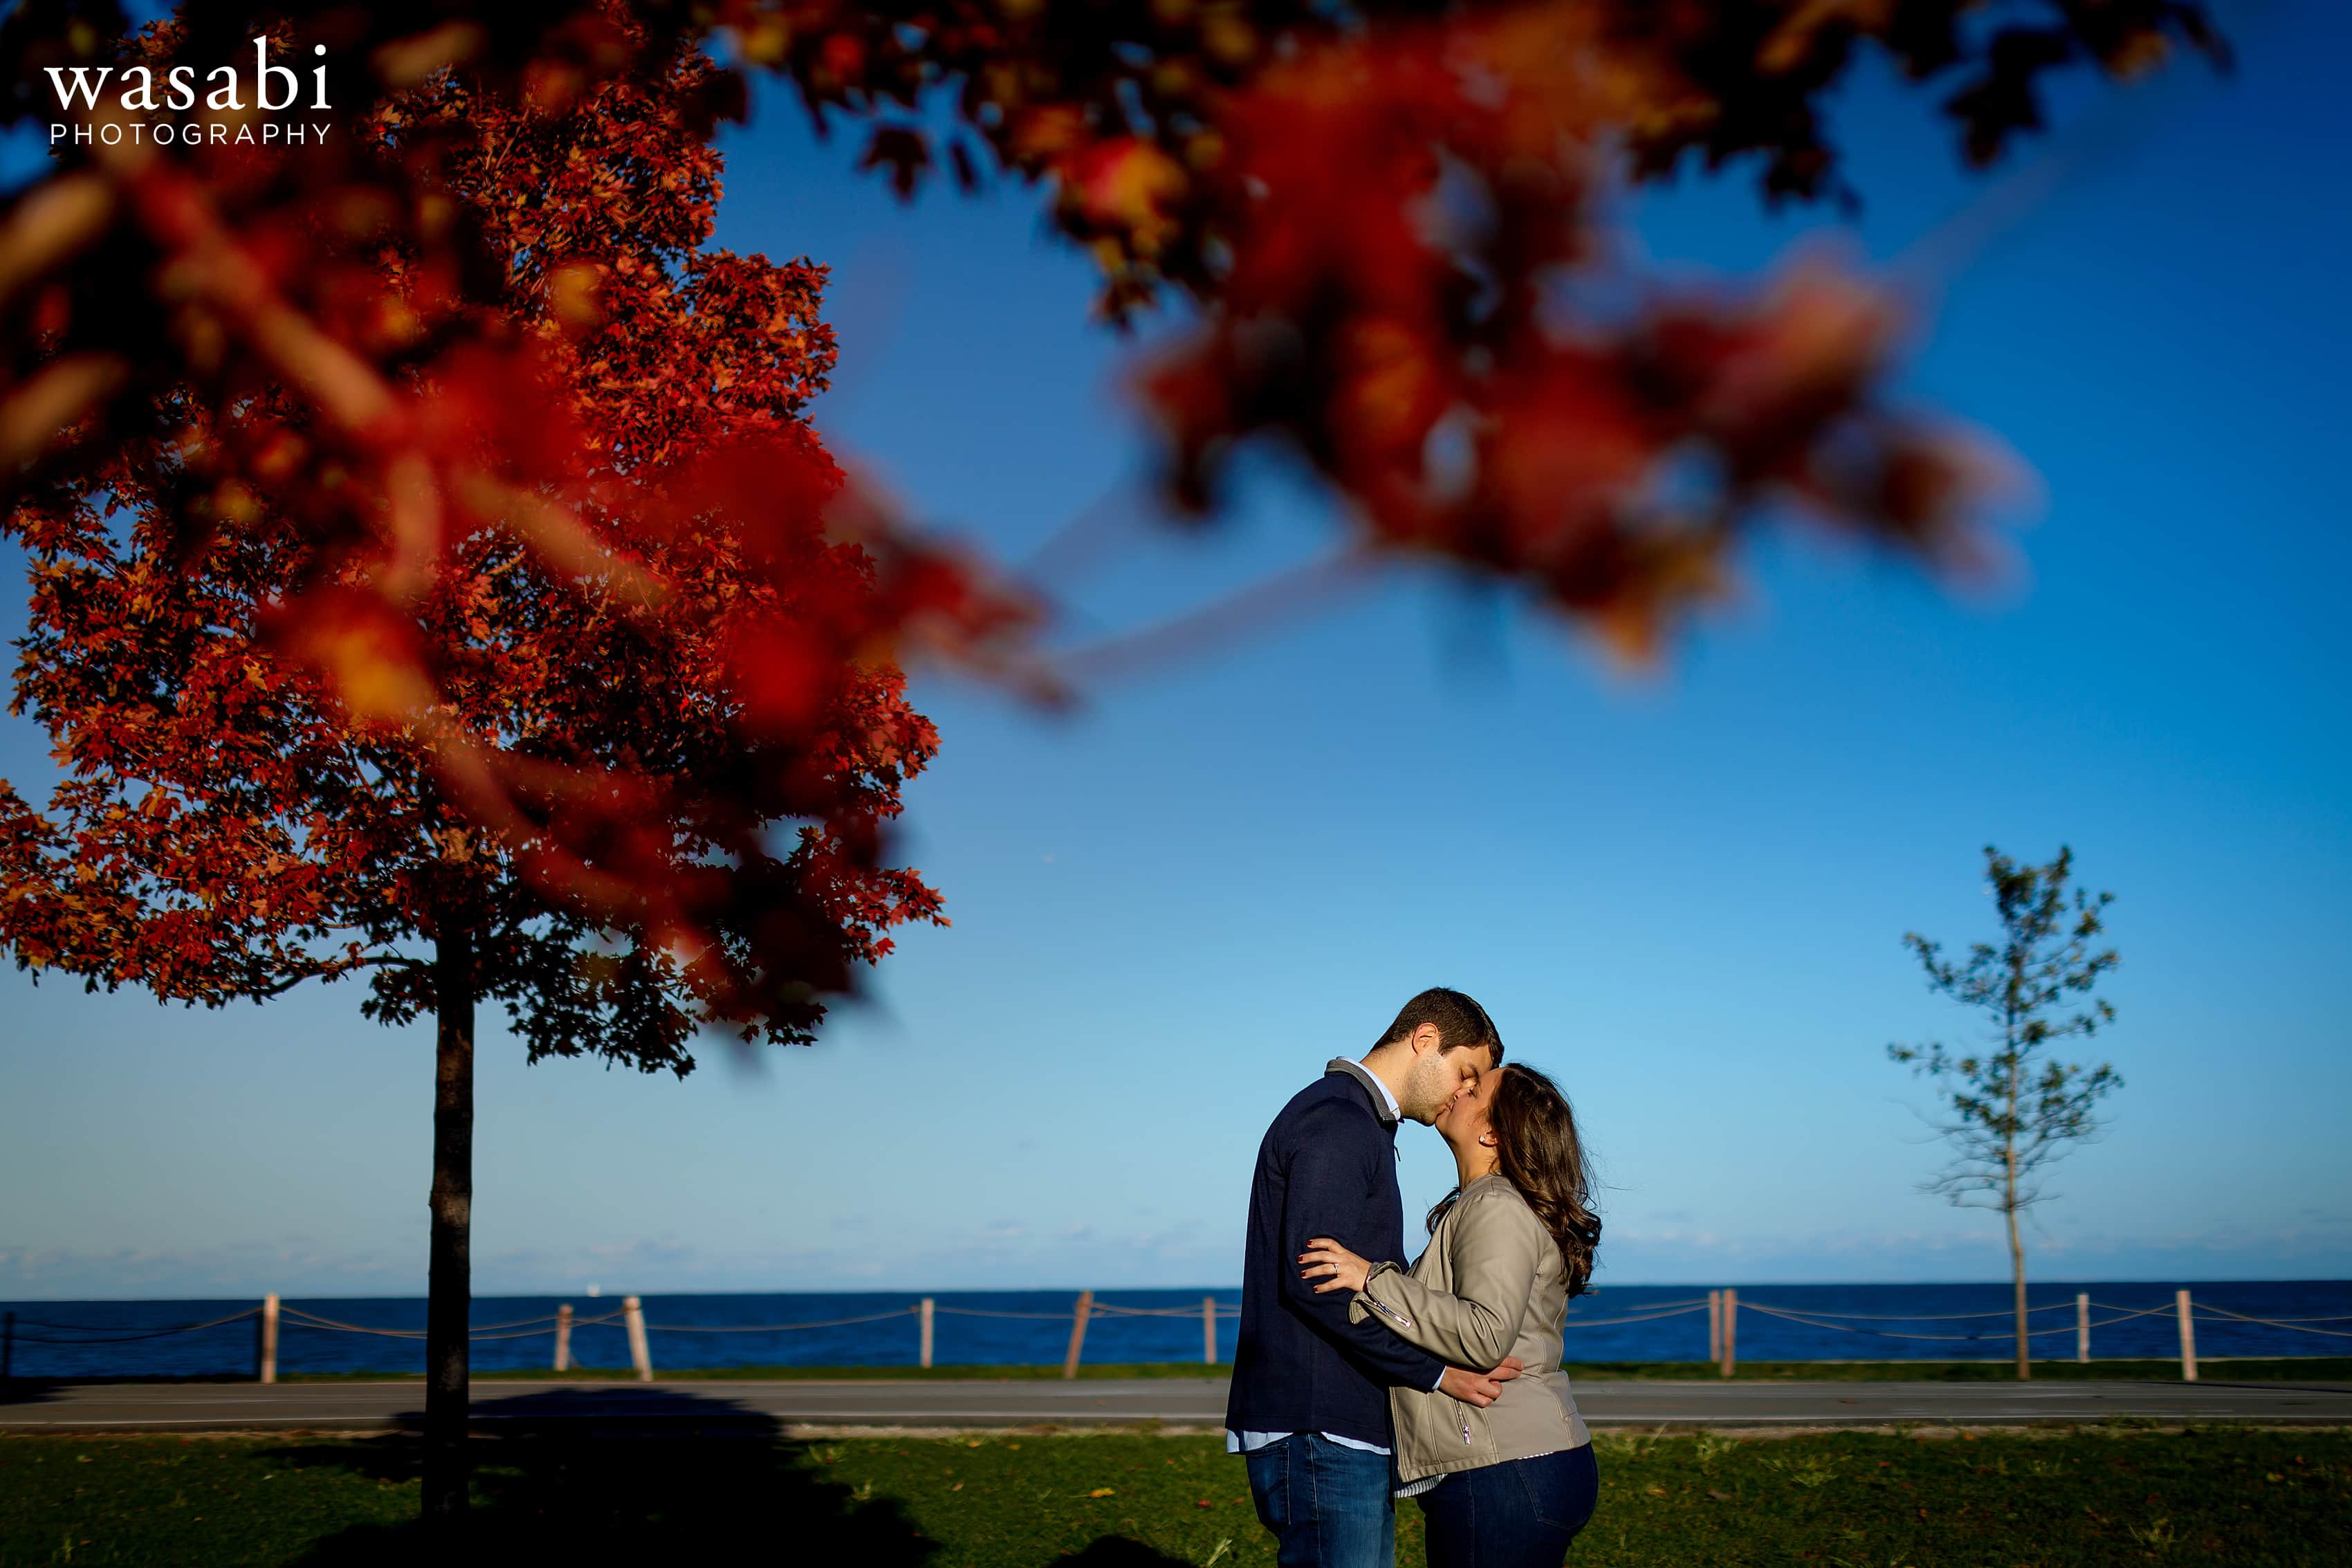 couple kisses with Lake Michigan and red fall color trees in the background at Fullerton Ave. Beach in Chicago